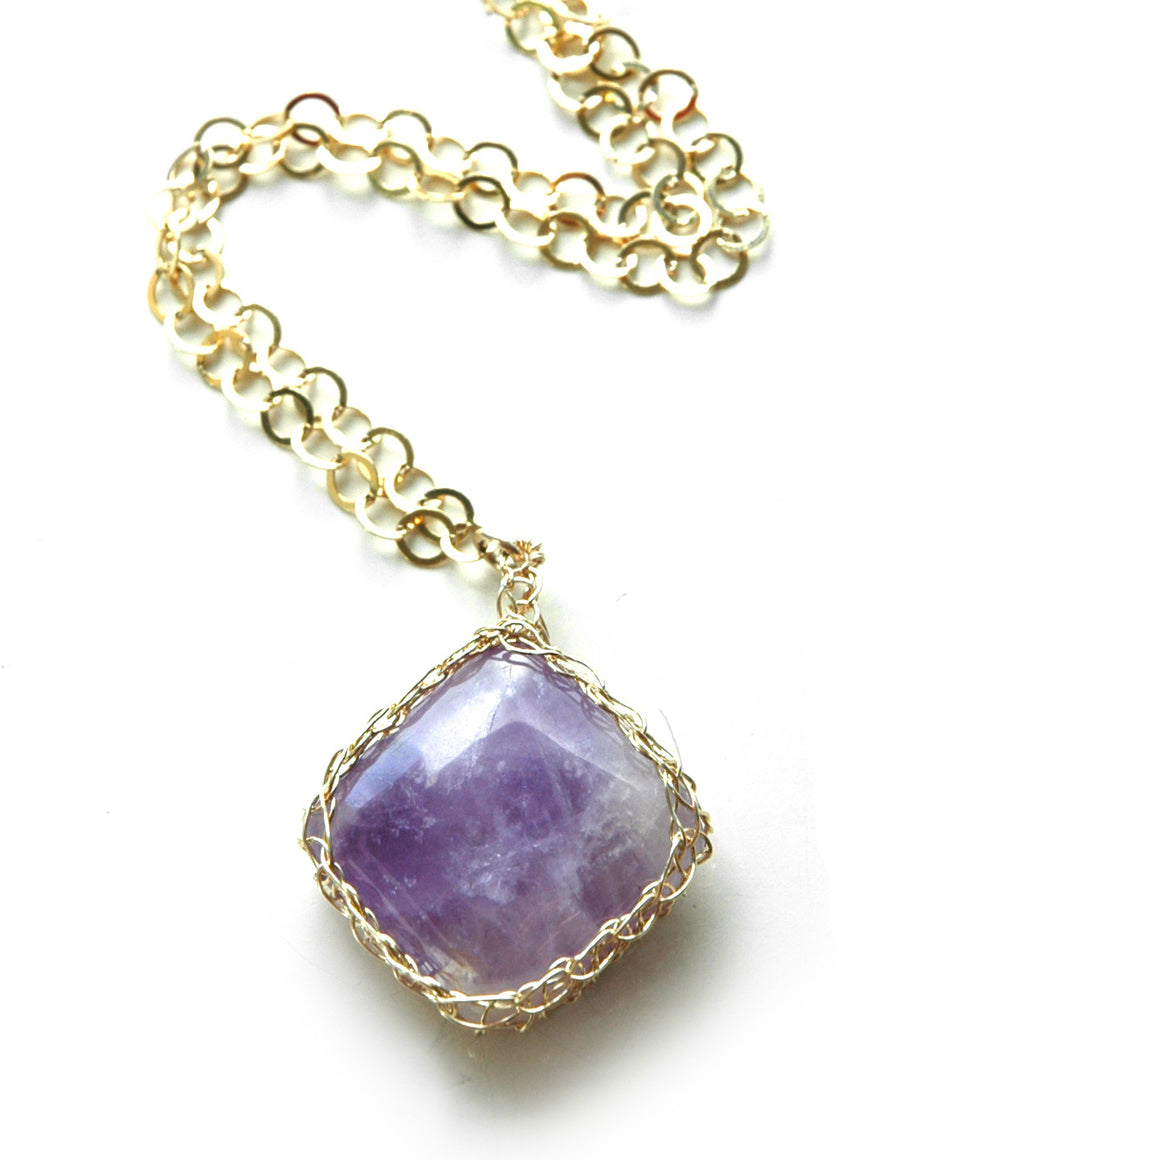 Rectangle Amethyst Pendant necklace in gold - Yooladesign